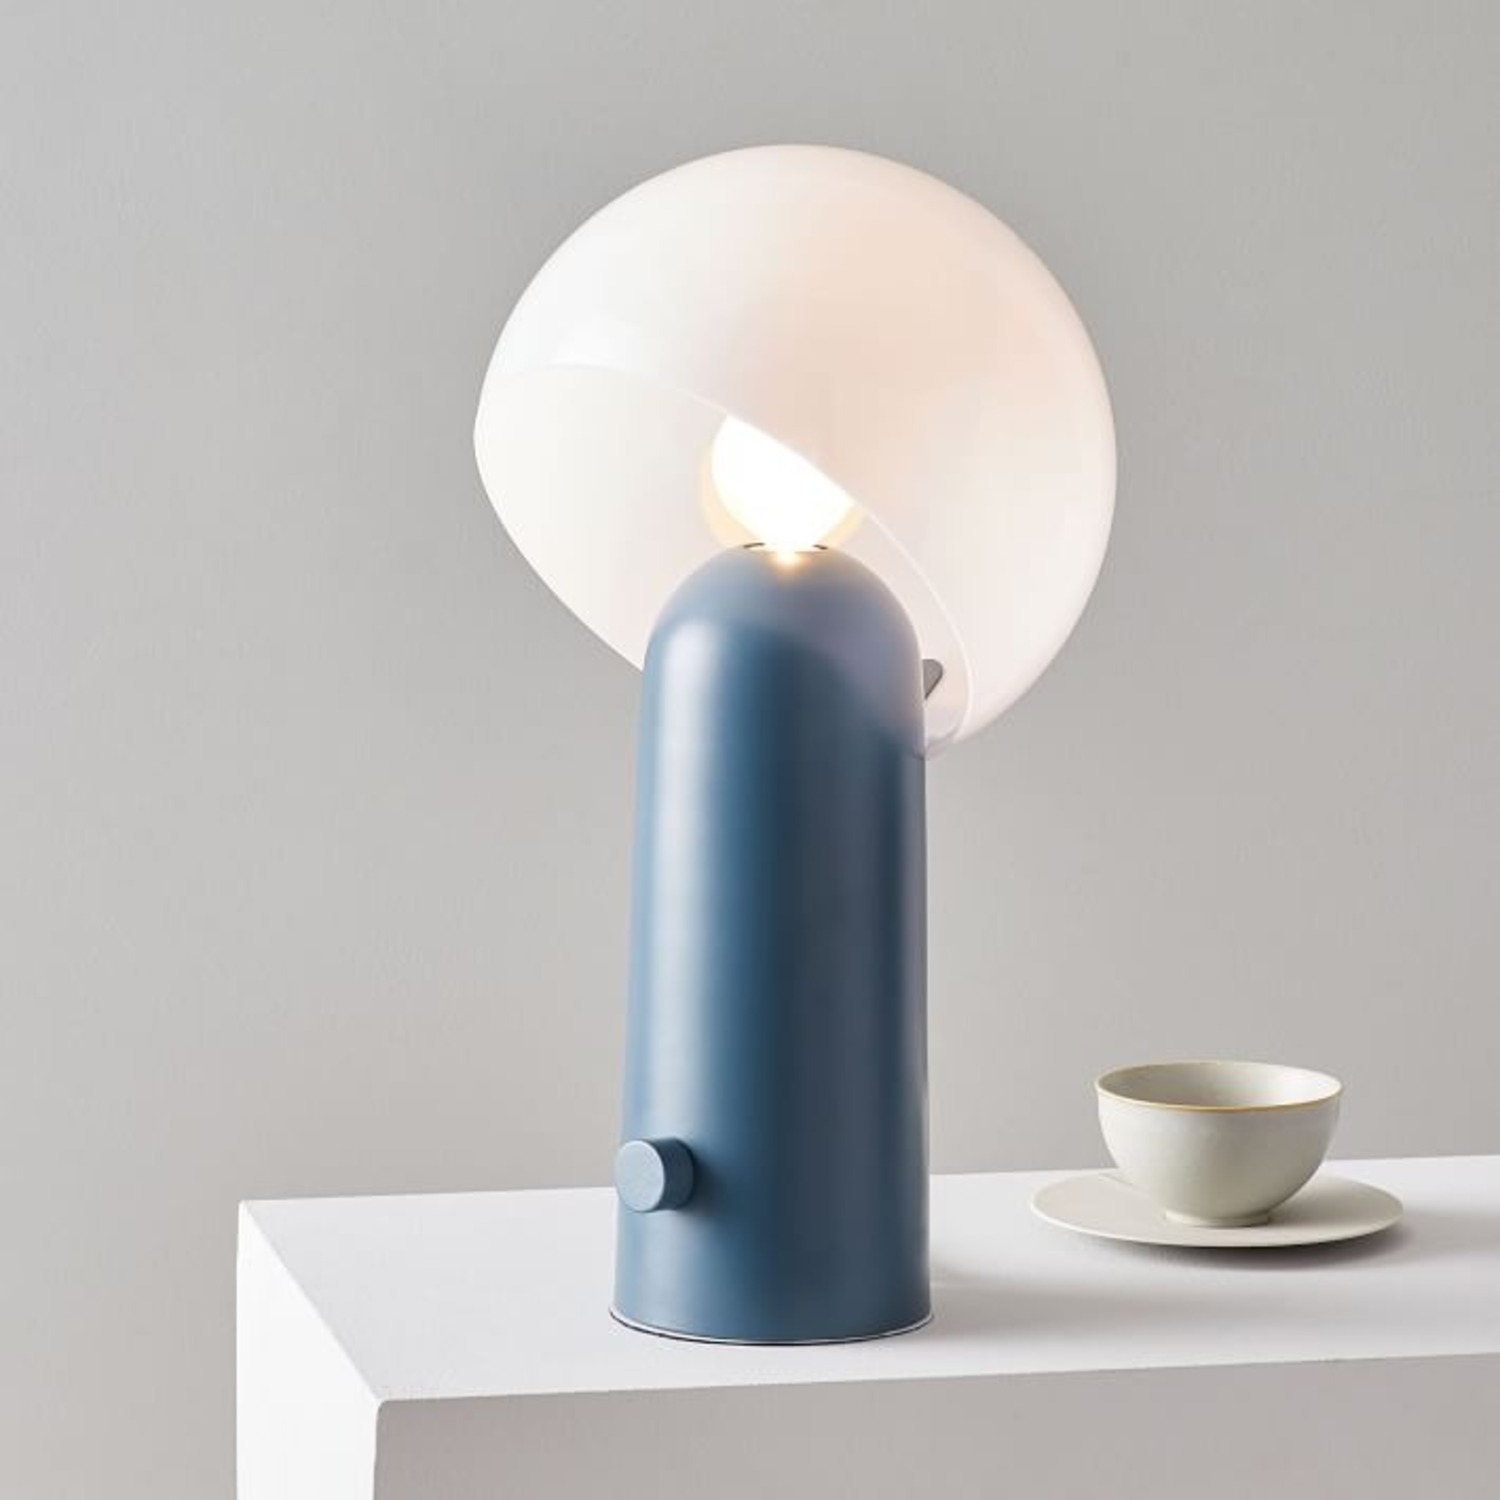 West Elm Torre Table Lamps - image-1